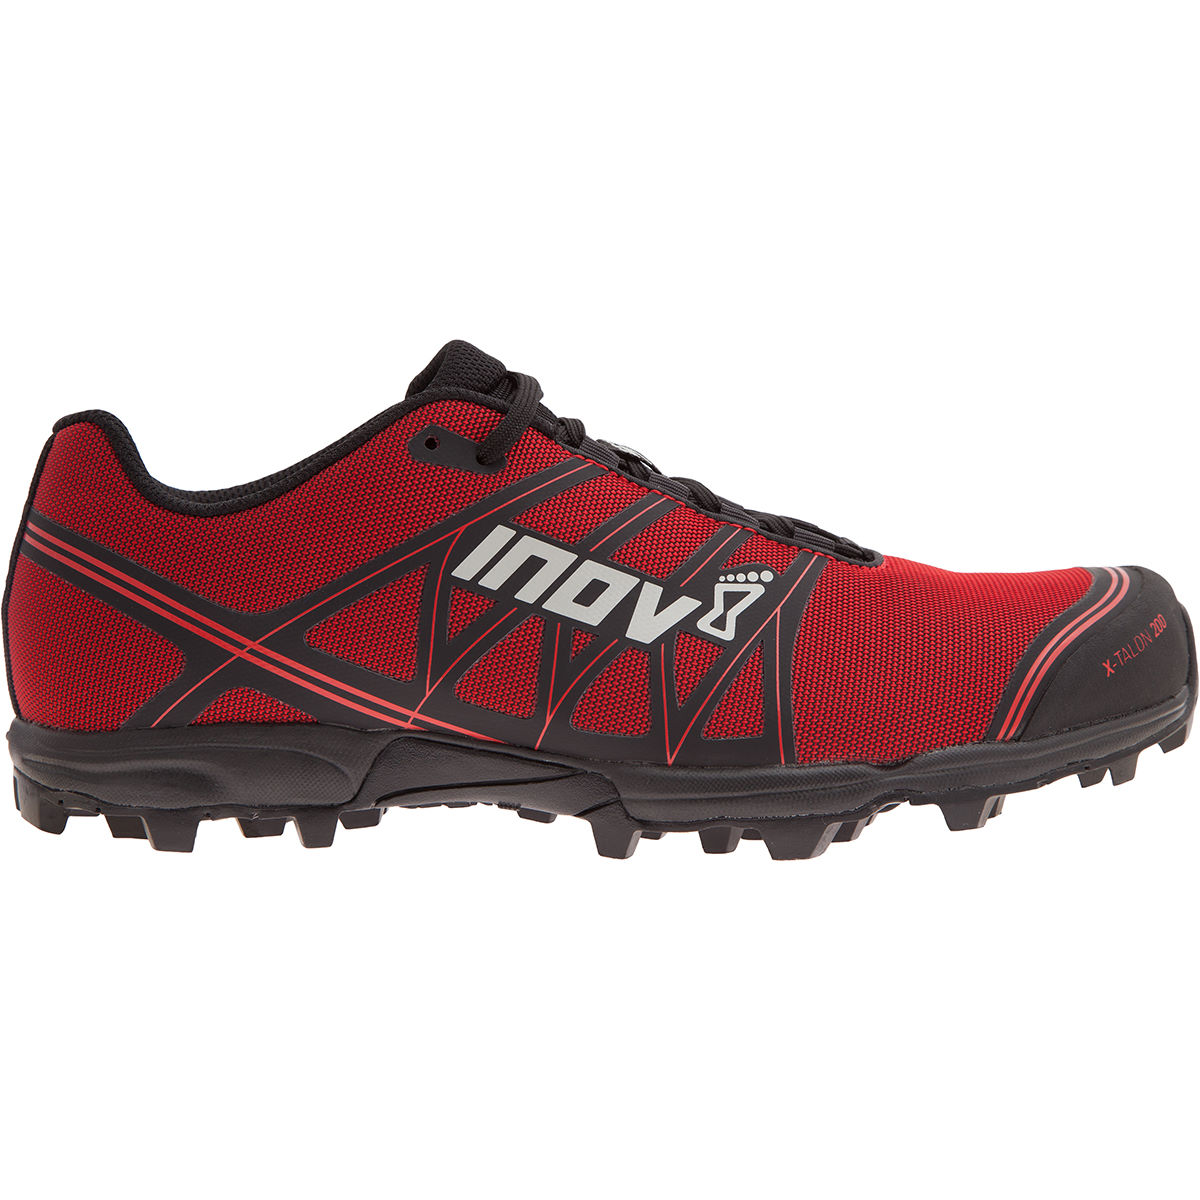 wiggle inov 8 x talon 200 shoes offroad running shoes. Black Bedroom Furniture Sets. Home Design Ideas